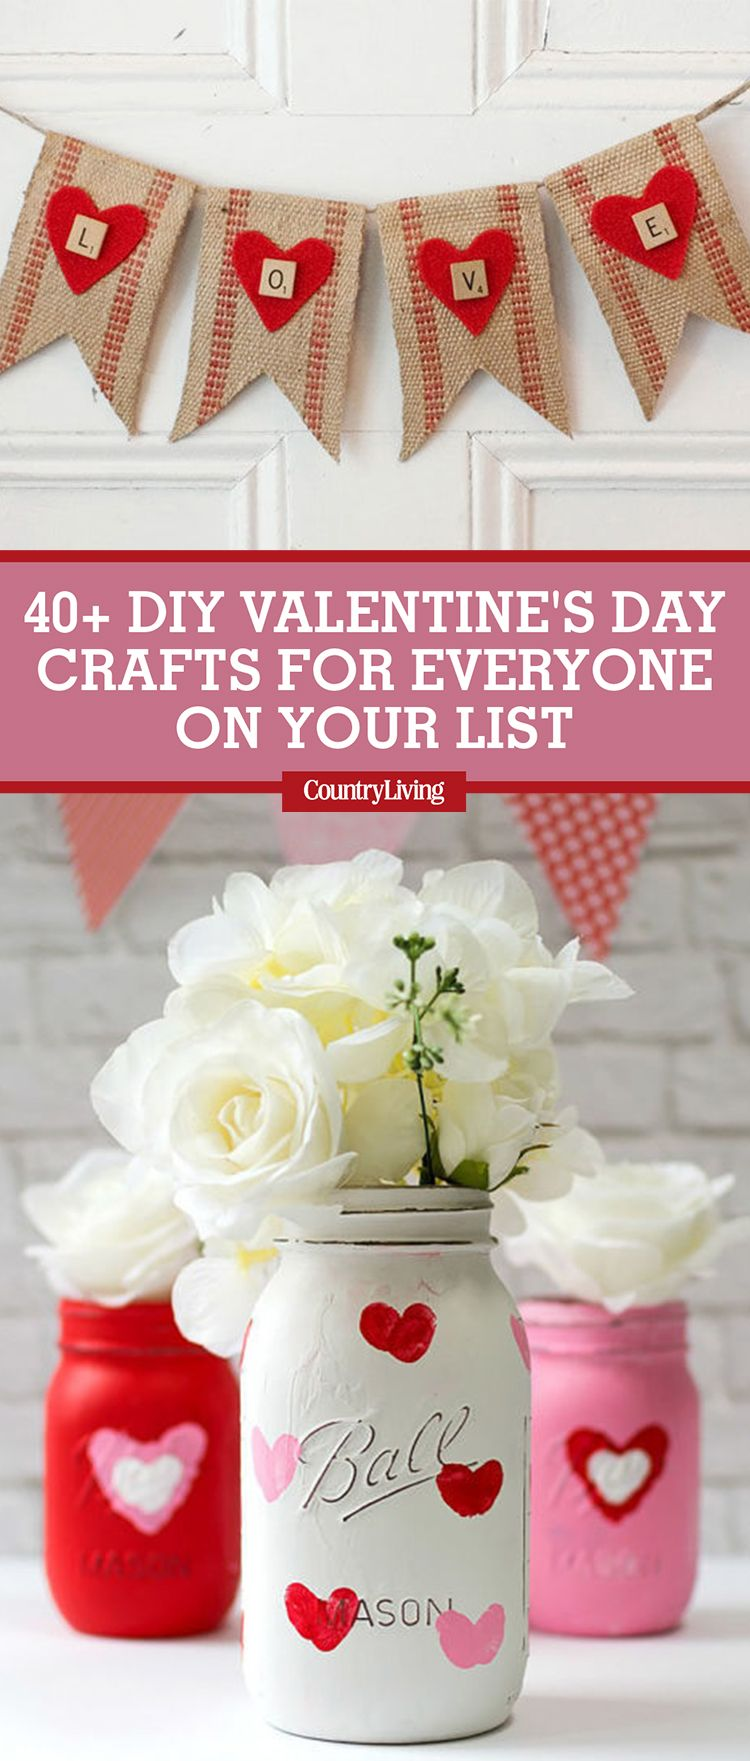 42 Valentines Day Crafts and DIY Ideas  Best Ideas for